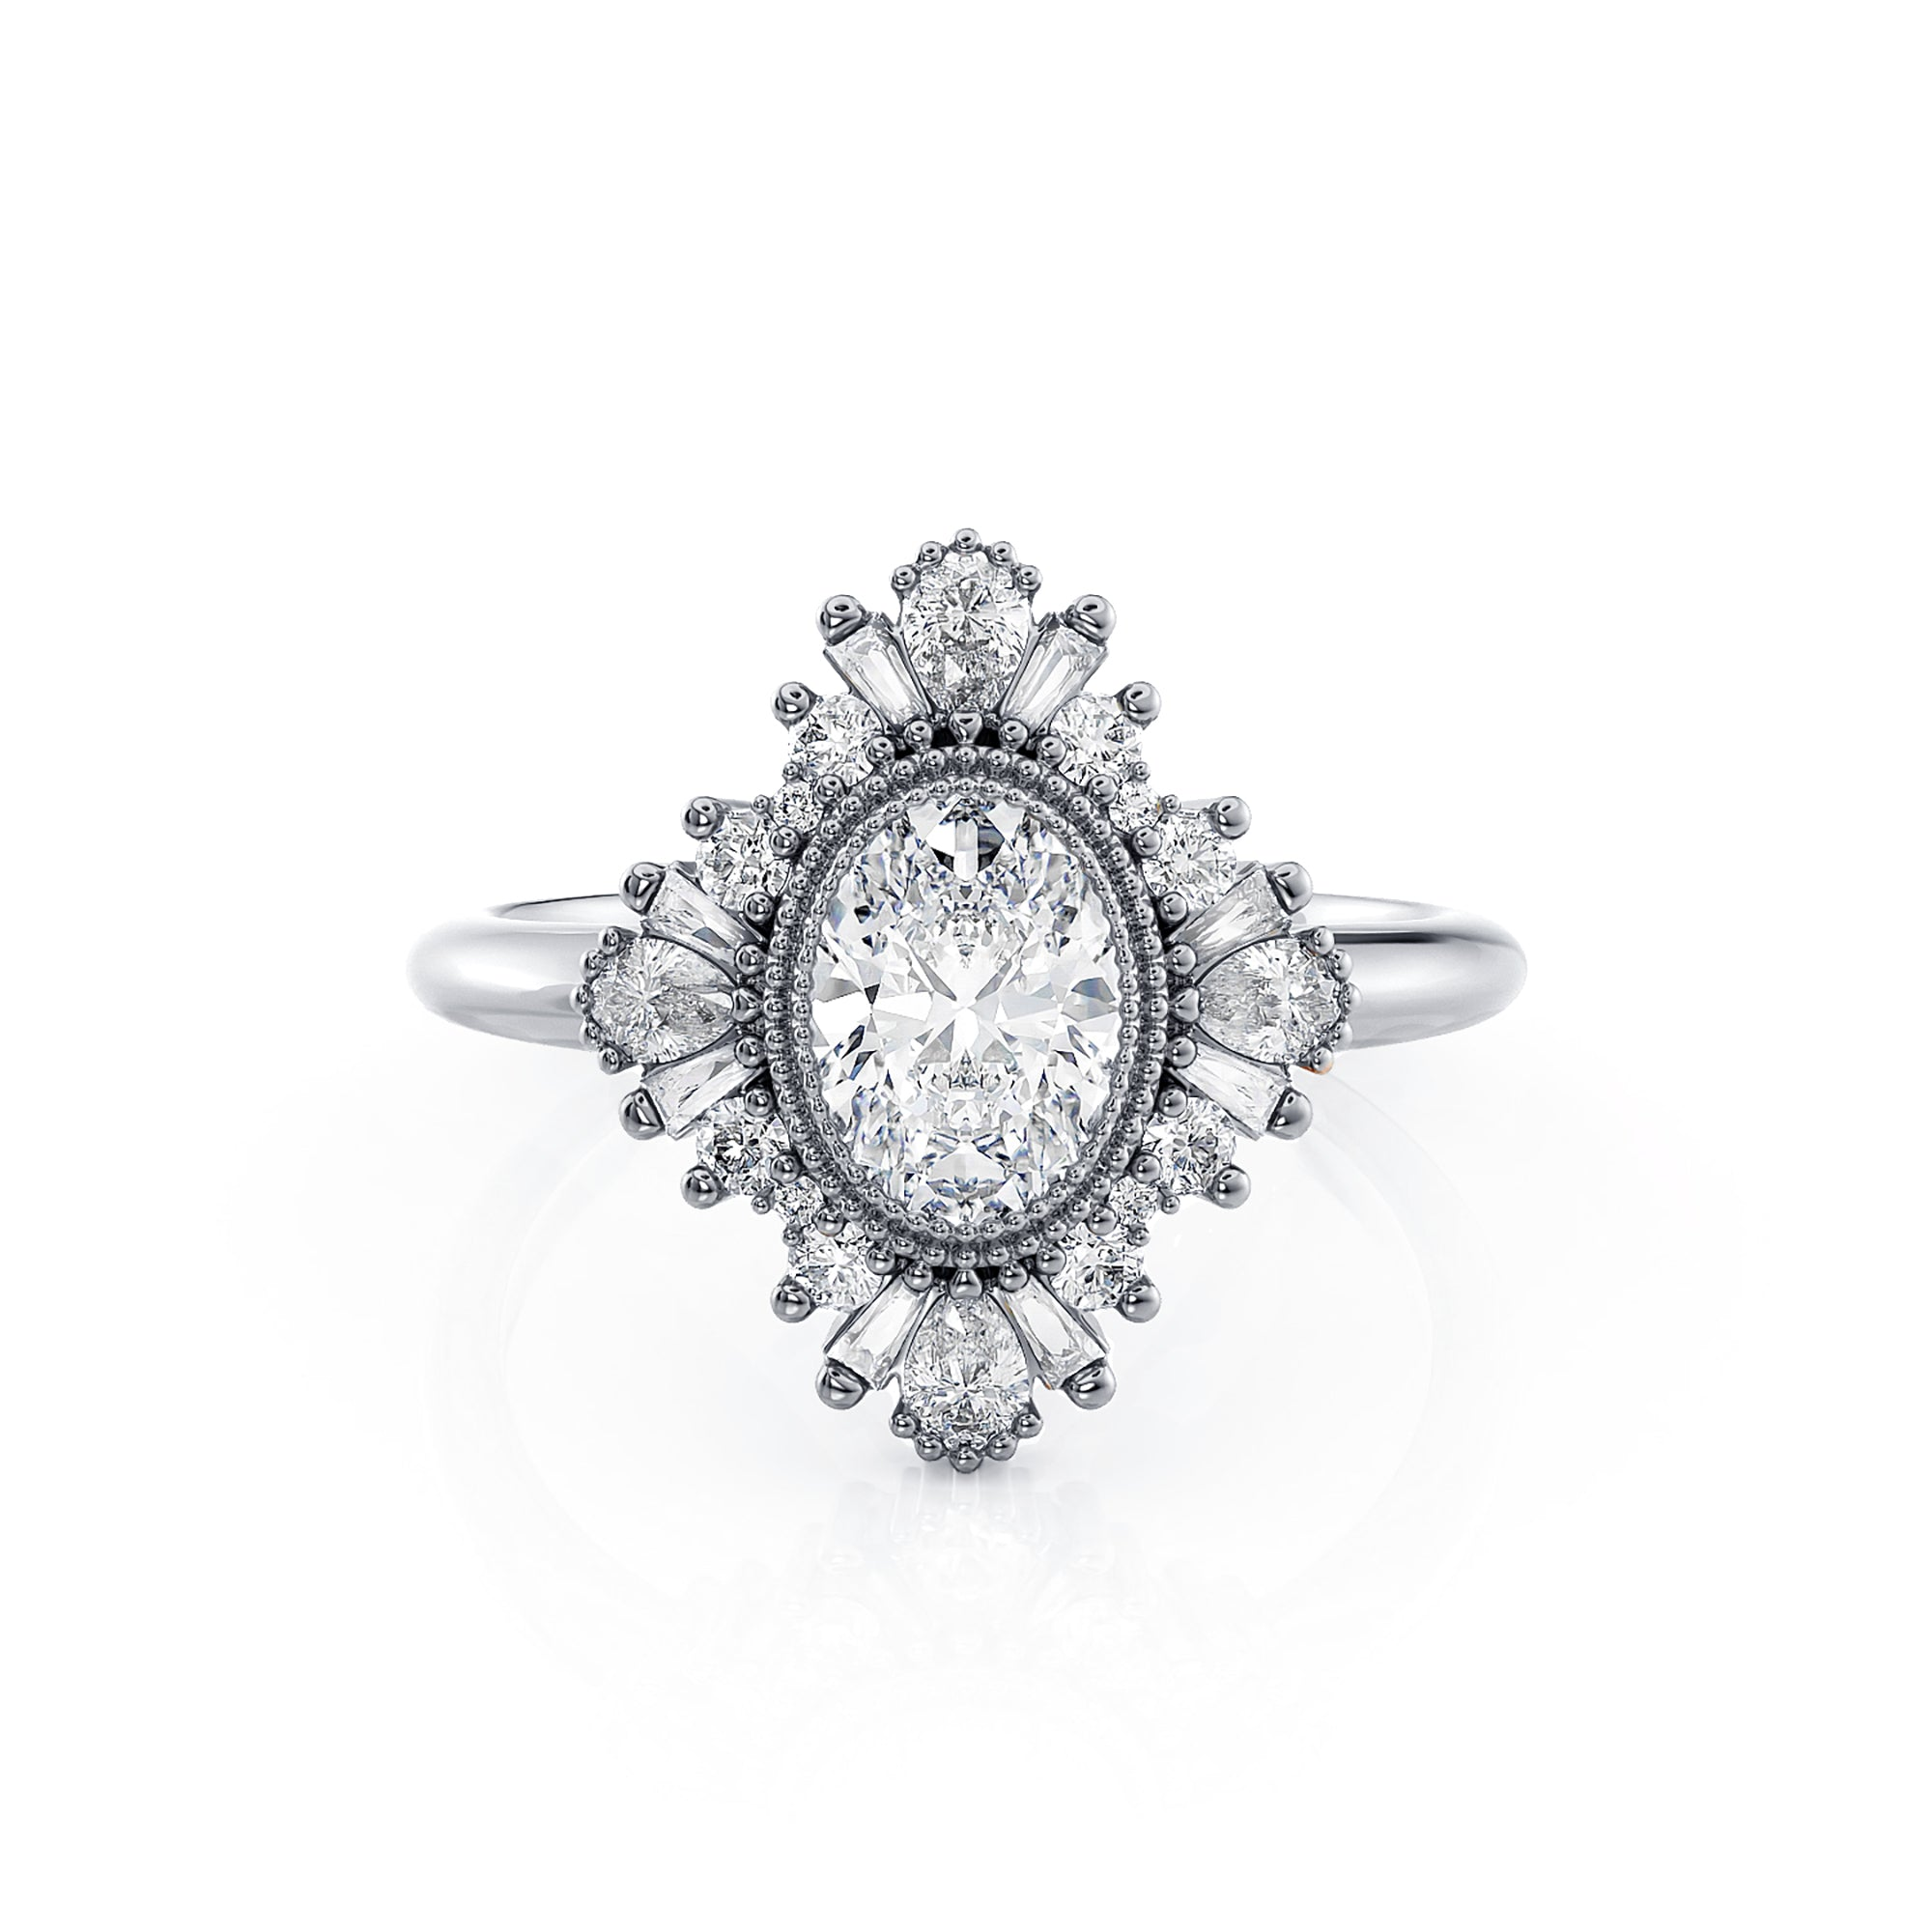 Victoria | Oval Diamond Art Deco Ballerina Ring | Palladium White Gold - Platinum